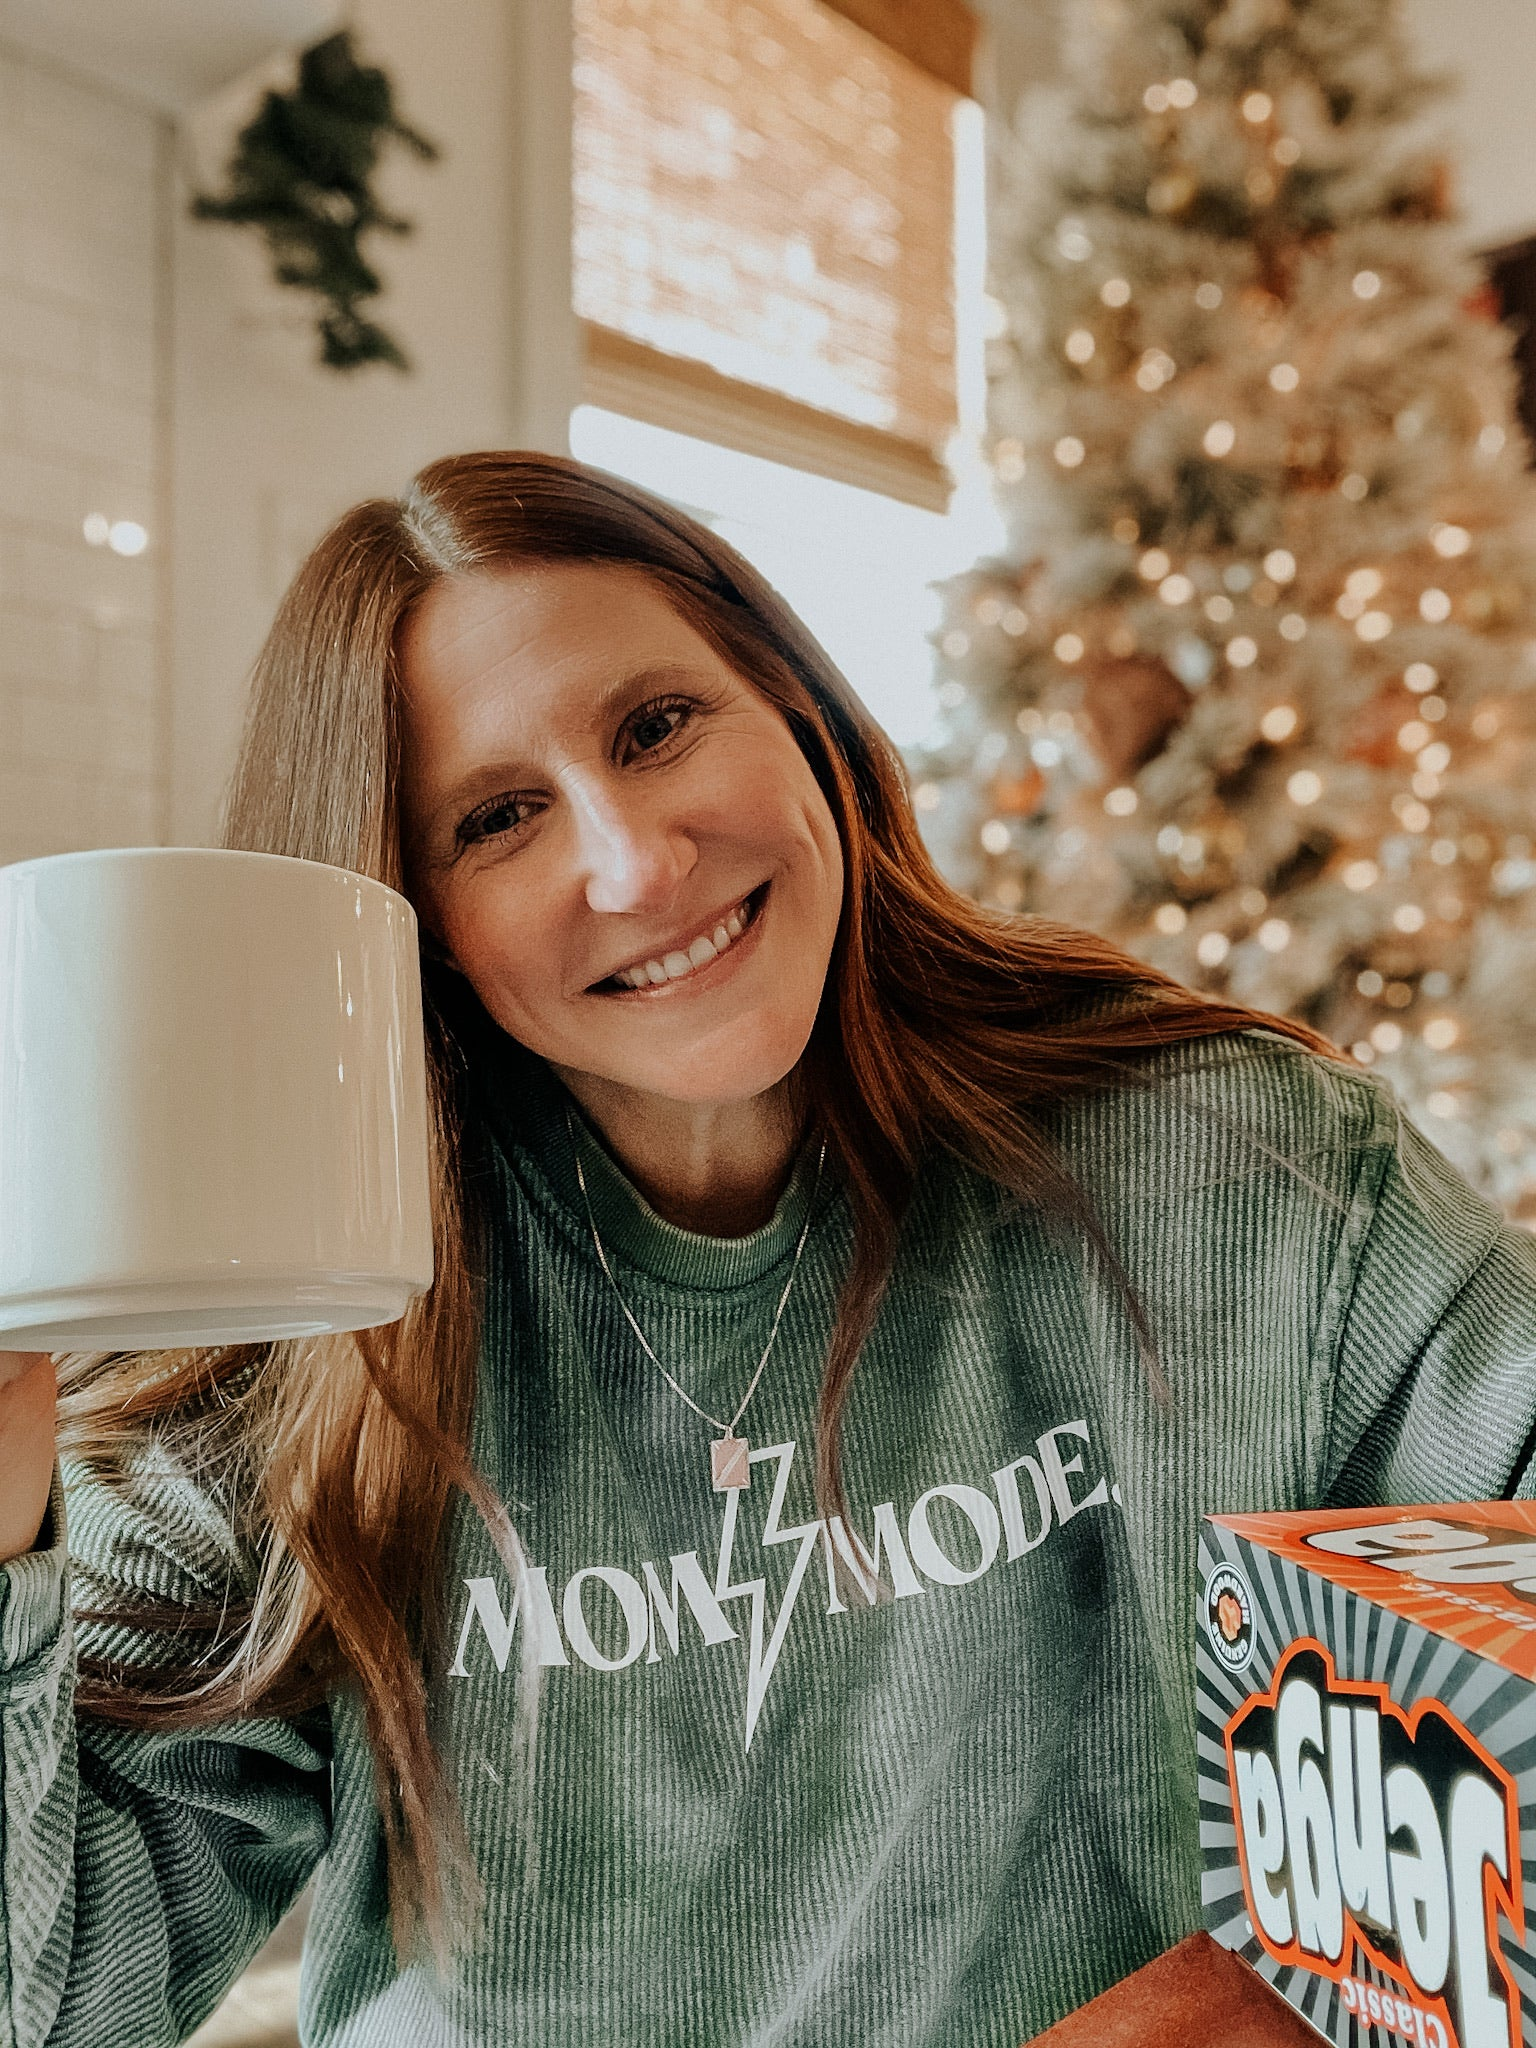 Written. Mom Mode Corded Sweatshirt - Elysian Boutique